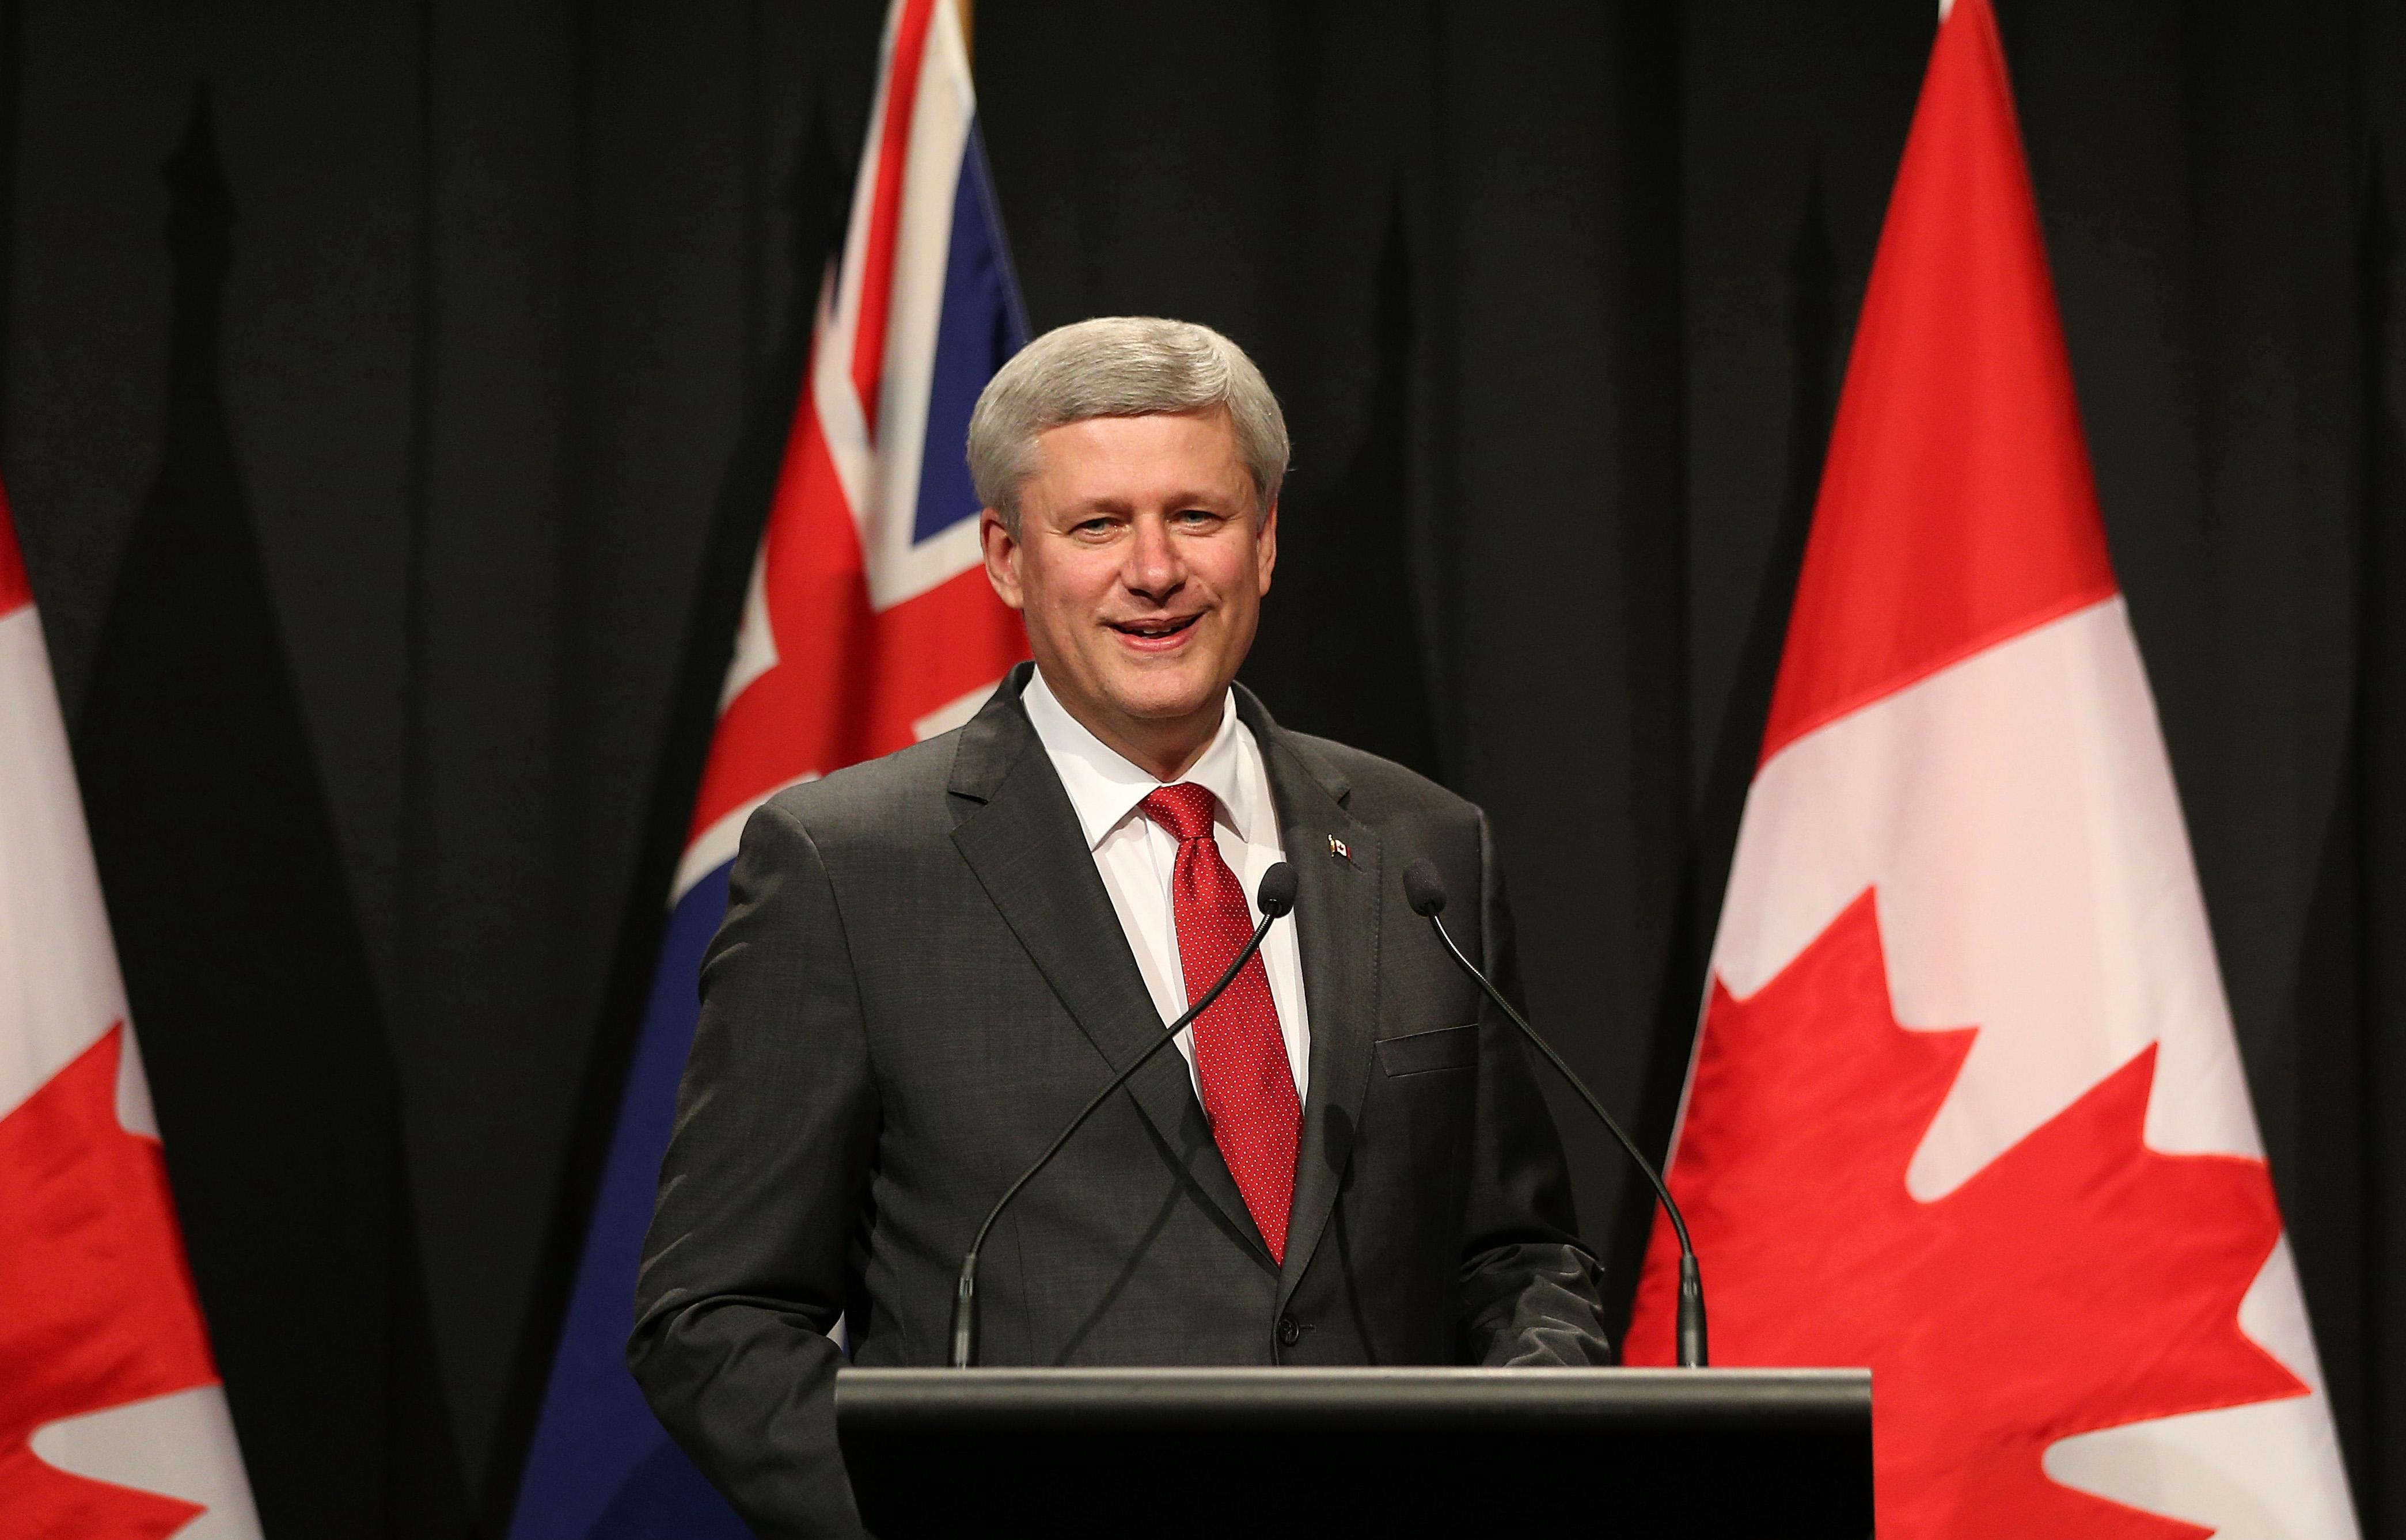 Canada's Prime Minister Stephen Harper speaks during a joint press conference with New Zealand's prime minister in Auckland on November 14, 2014 (AFP Photo/David Rowland)